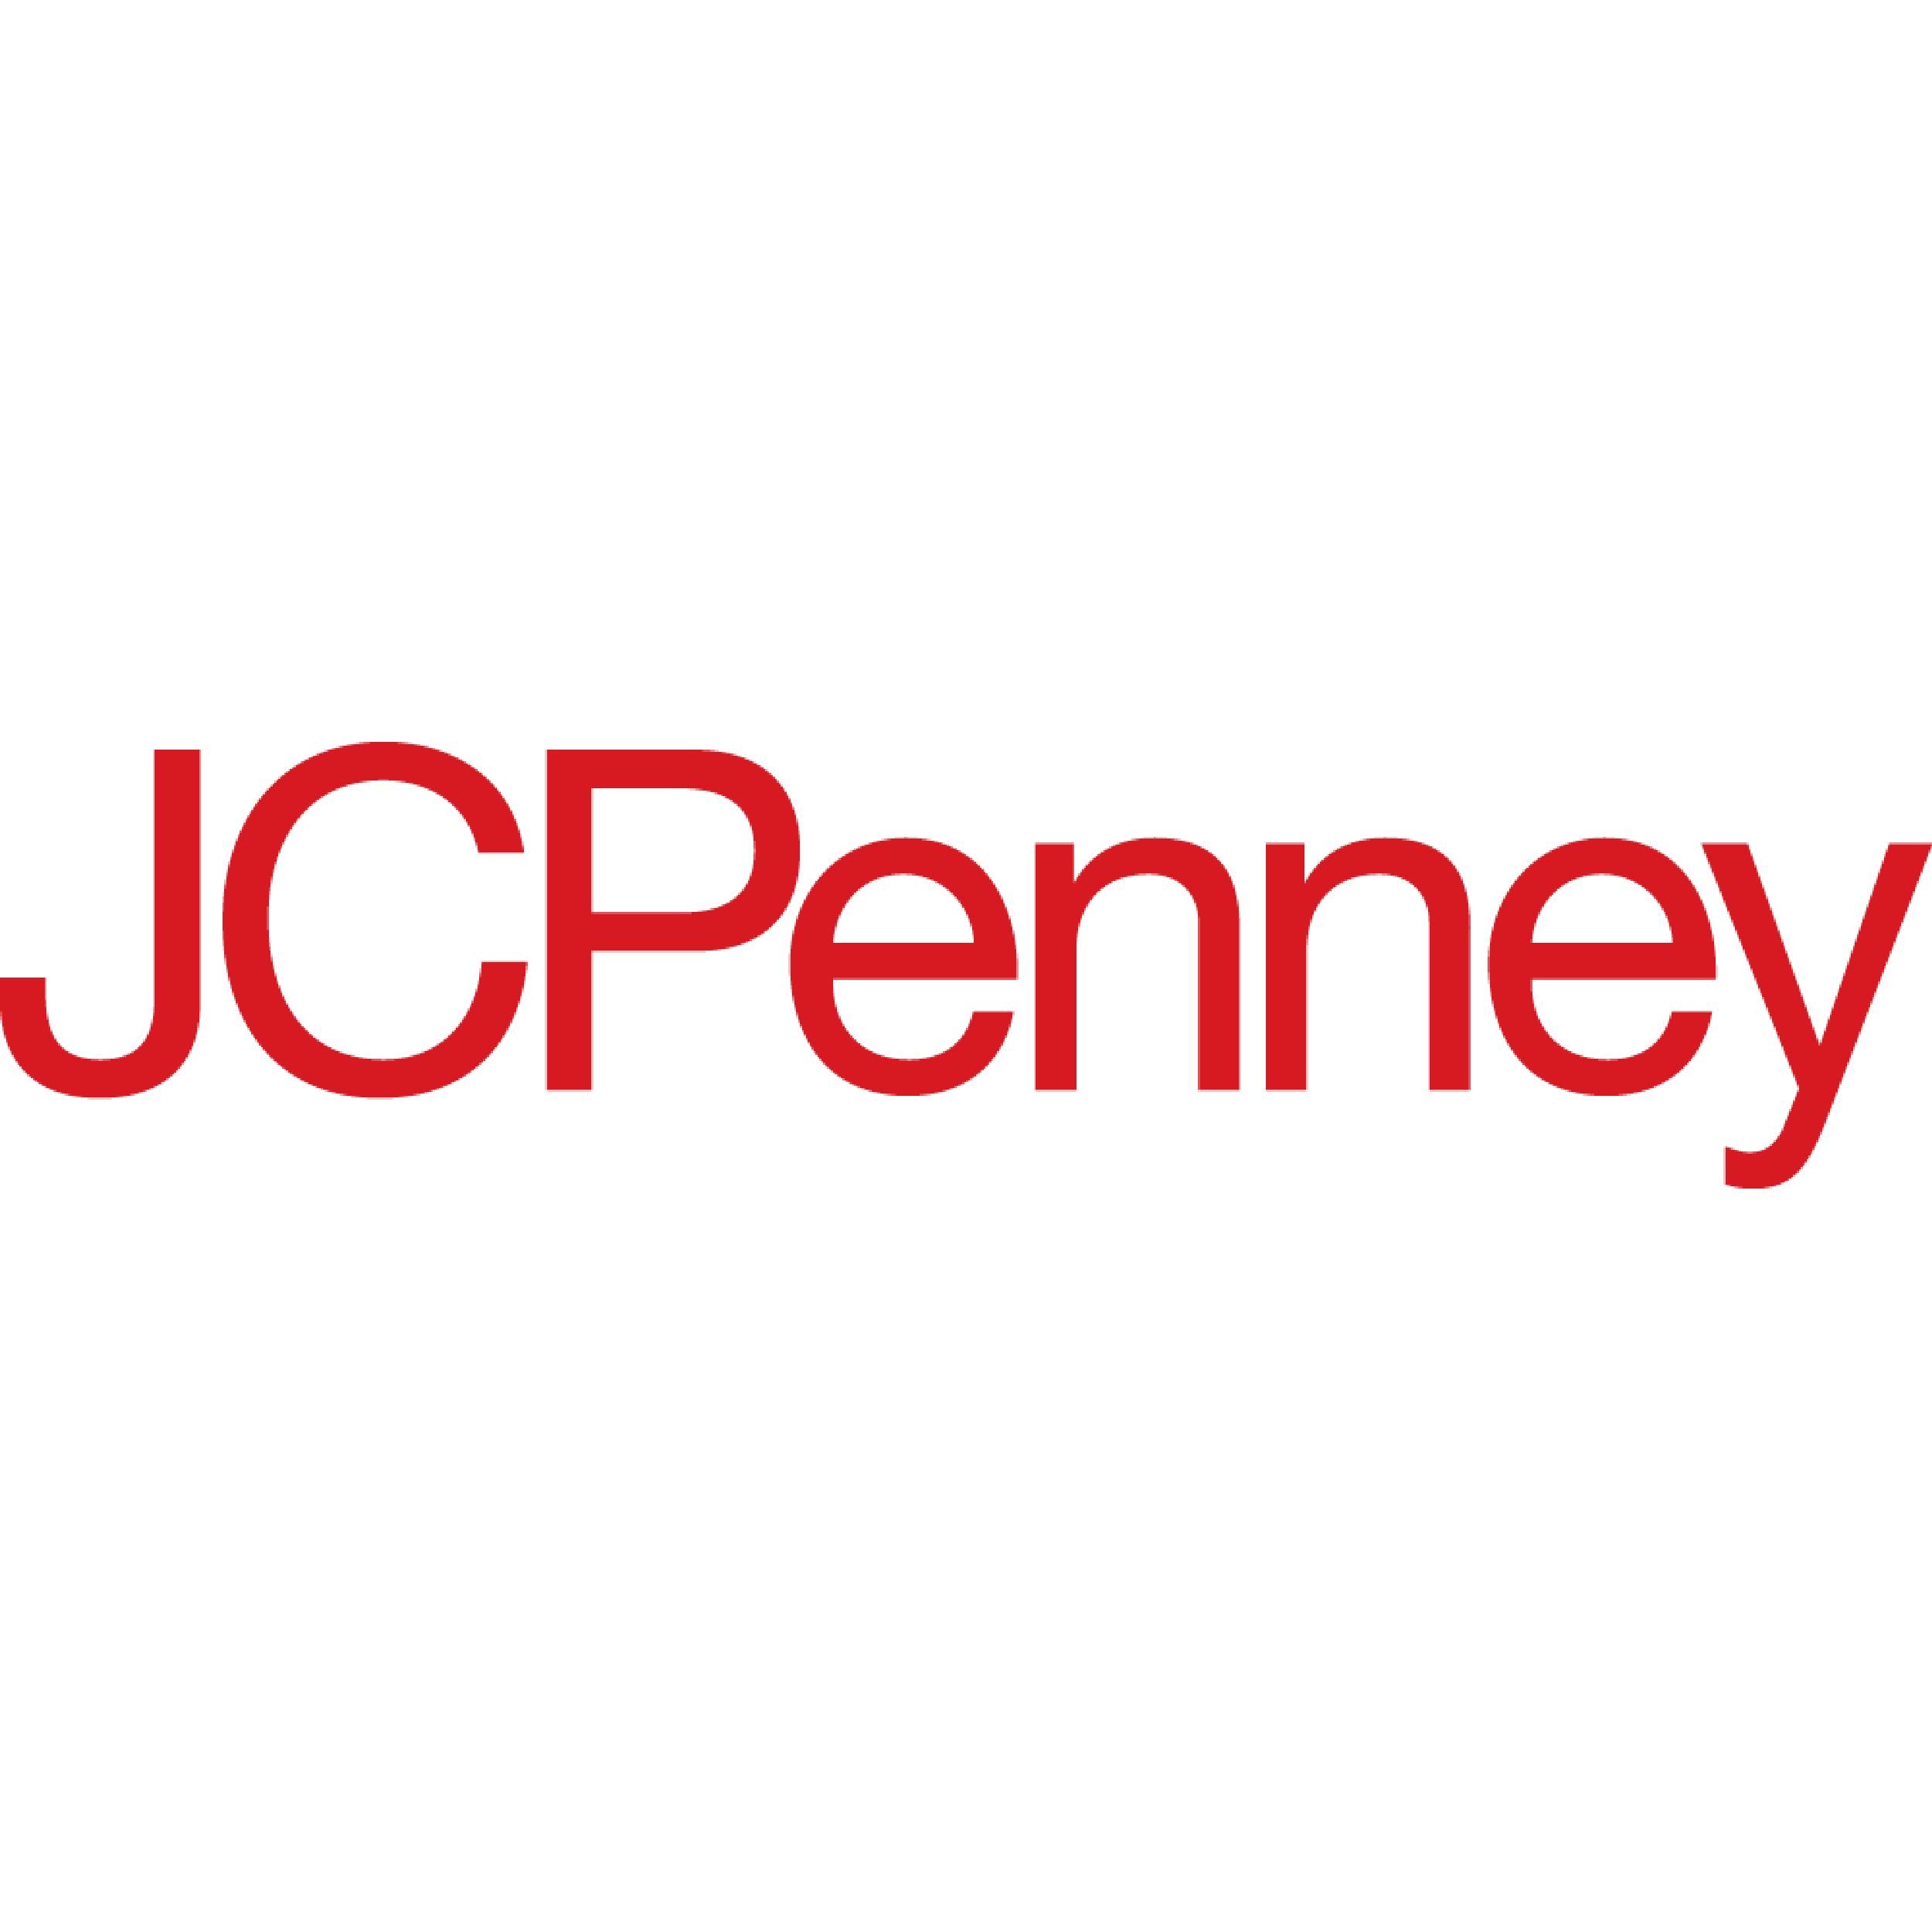 JCPenney - Mentor, OH - Department Stores